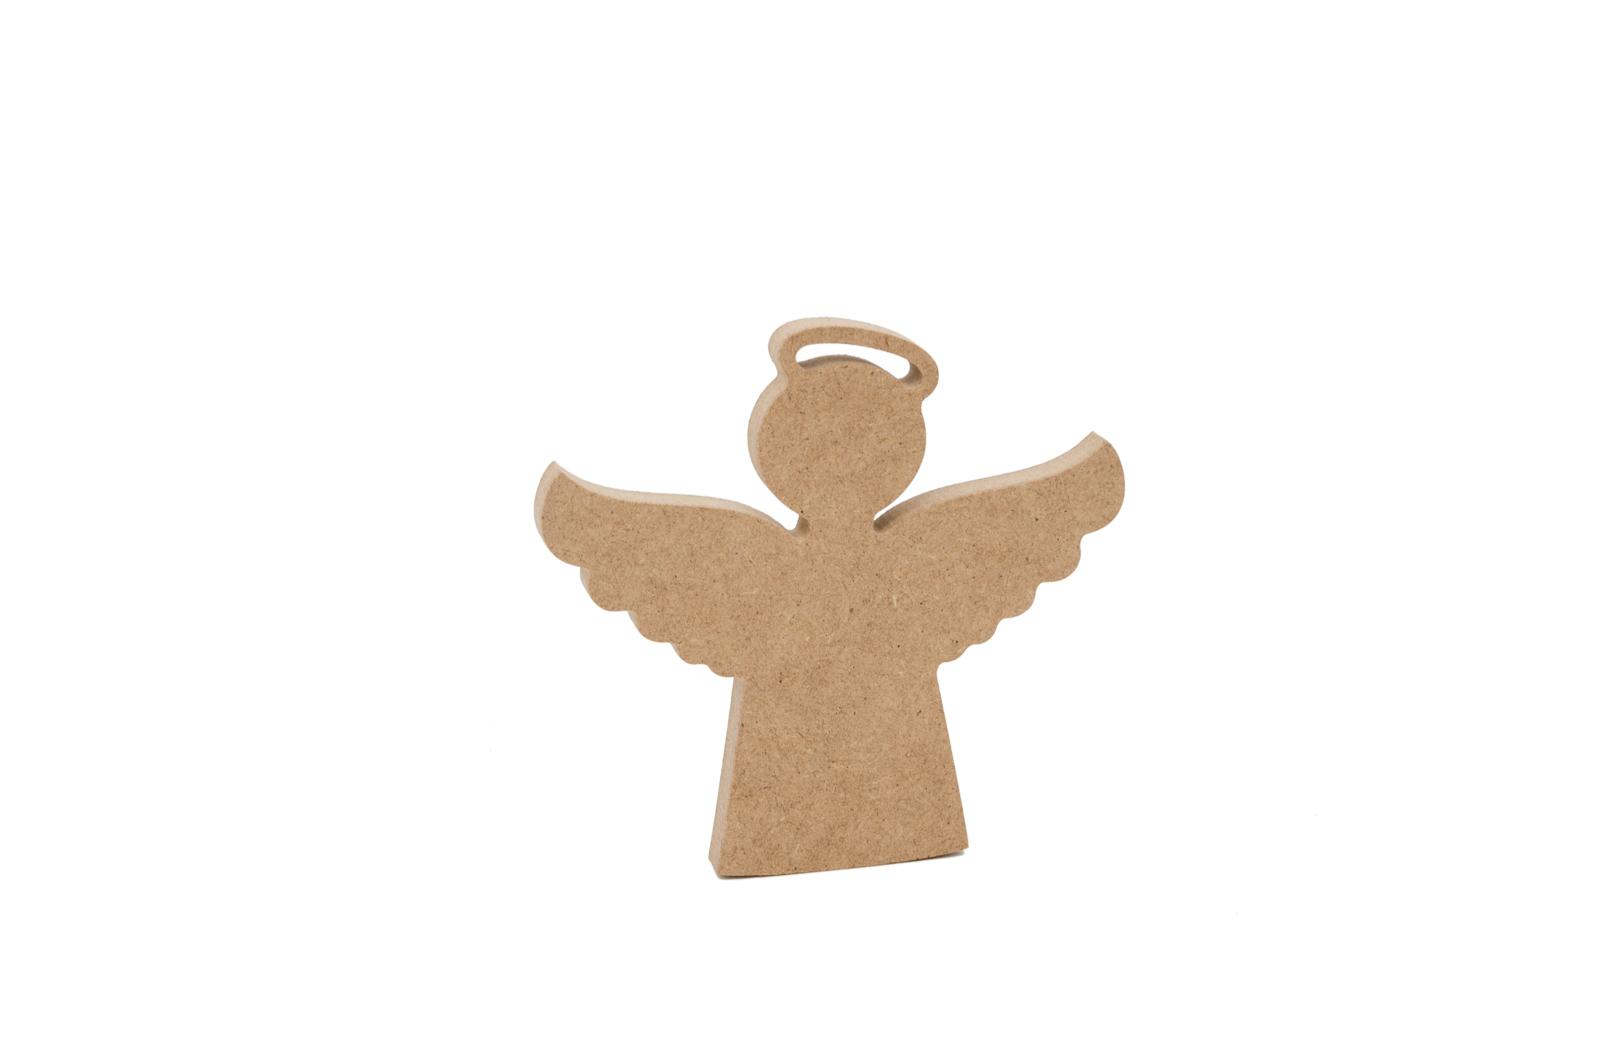 SET 2 ANGELS 15.8X14.9X1.2CM MDF